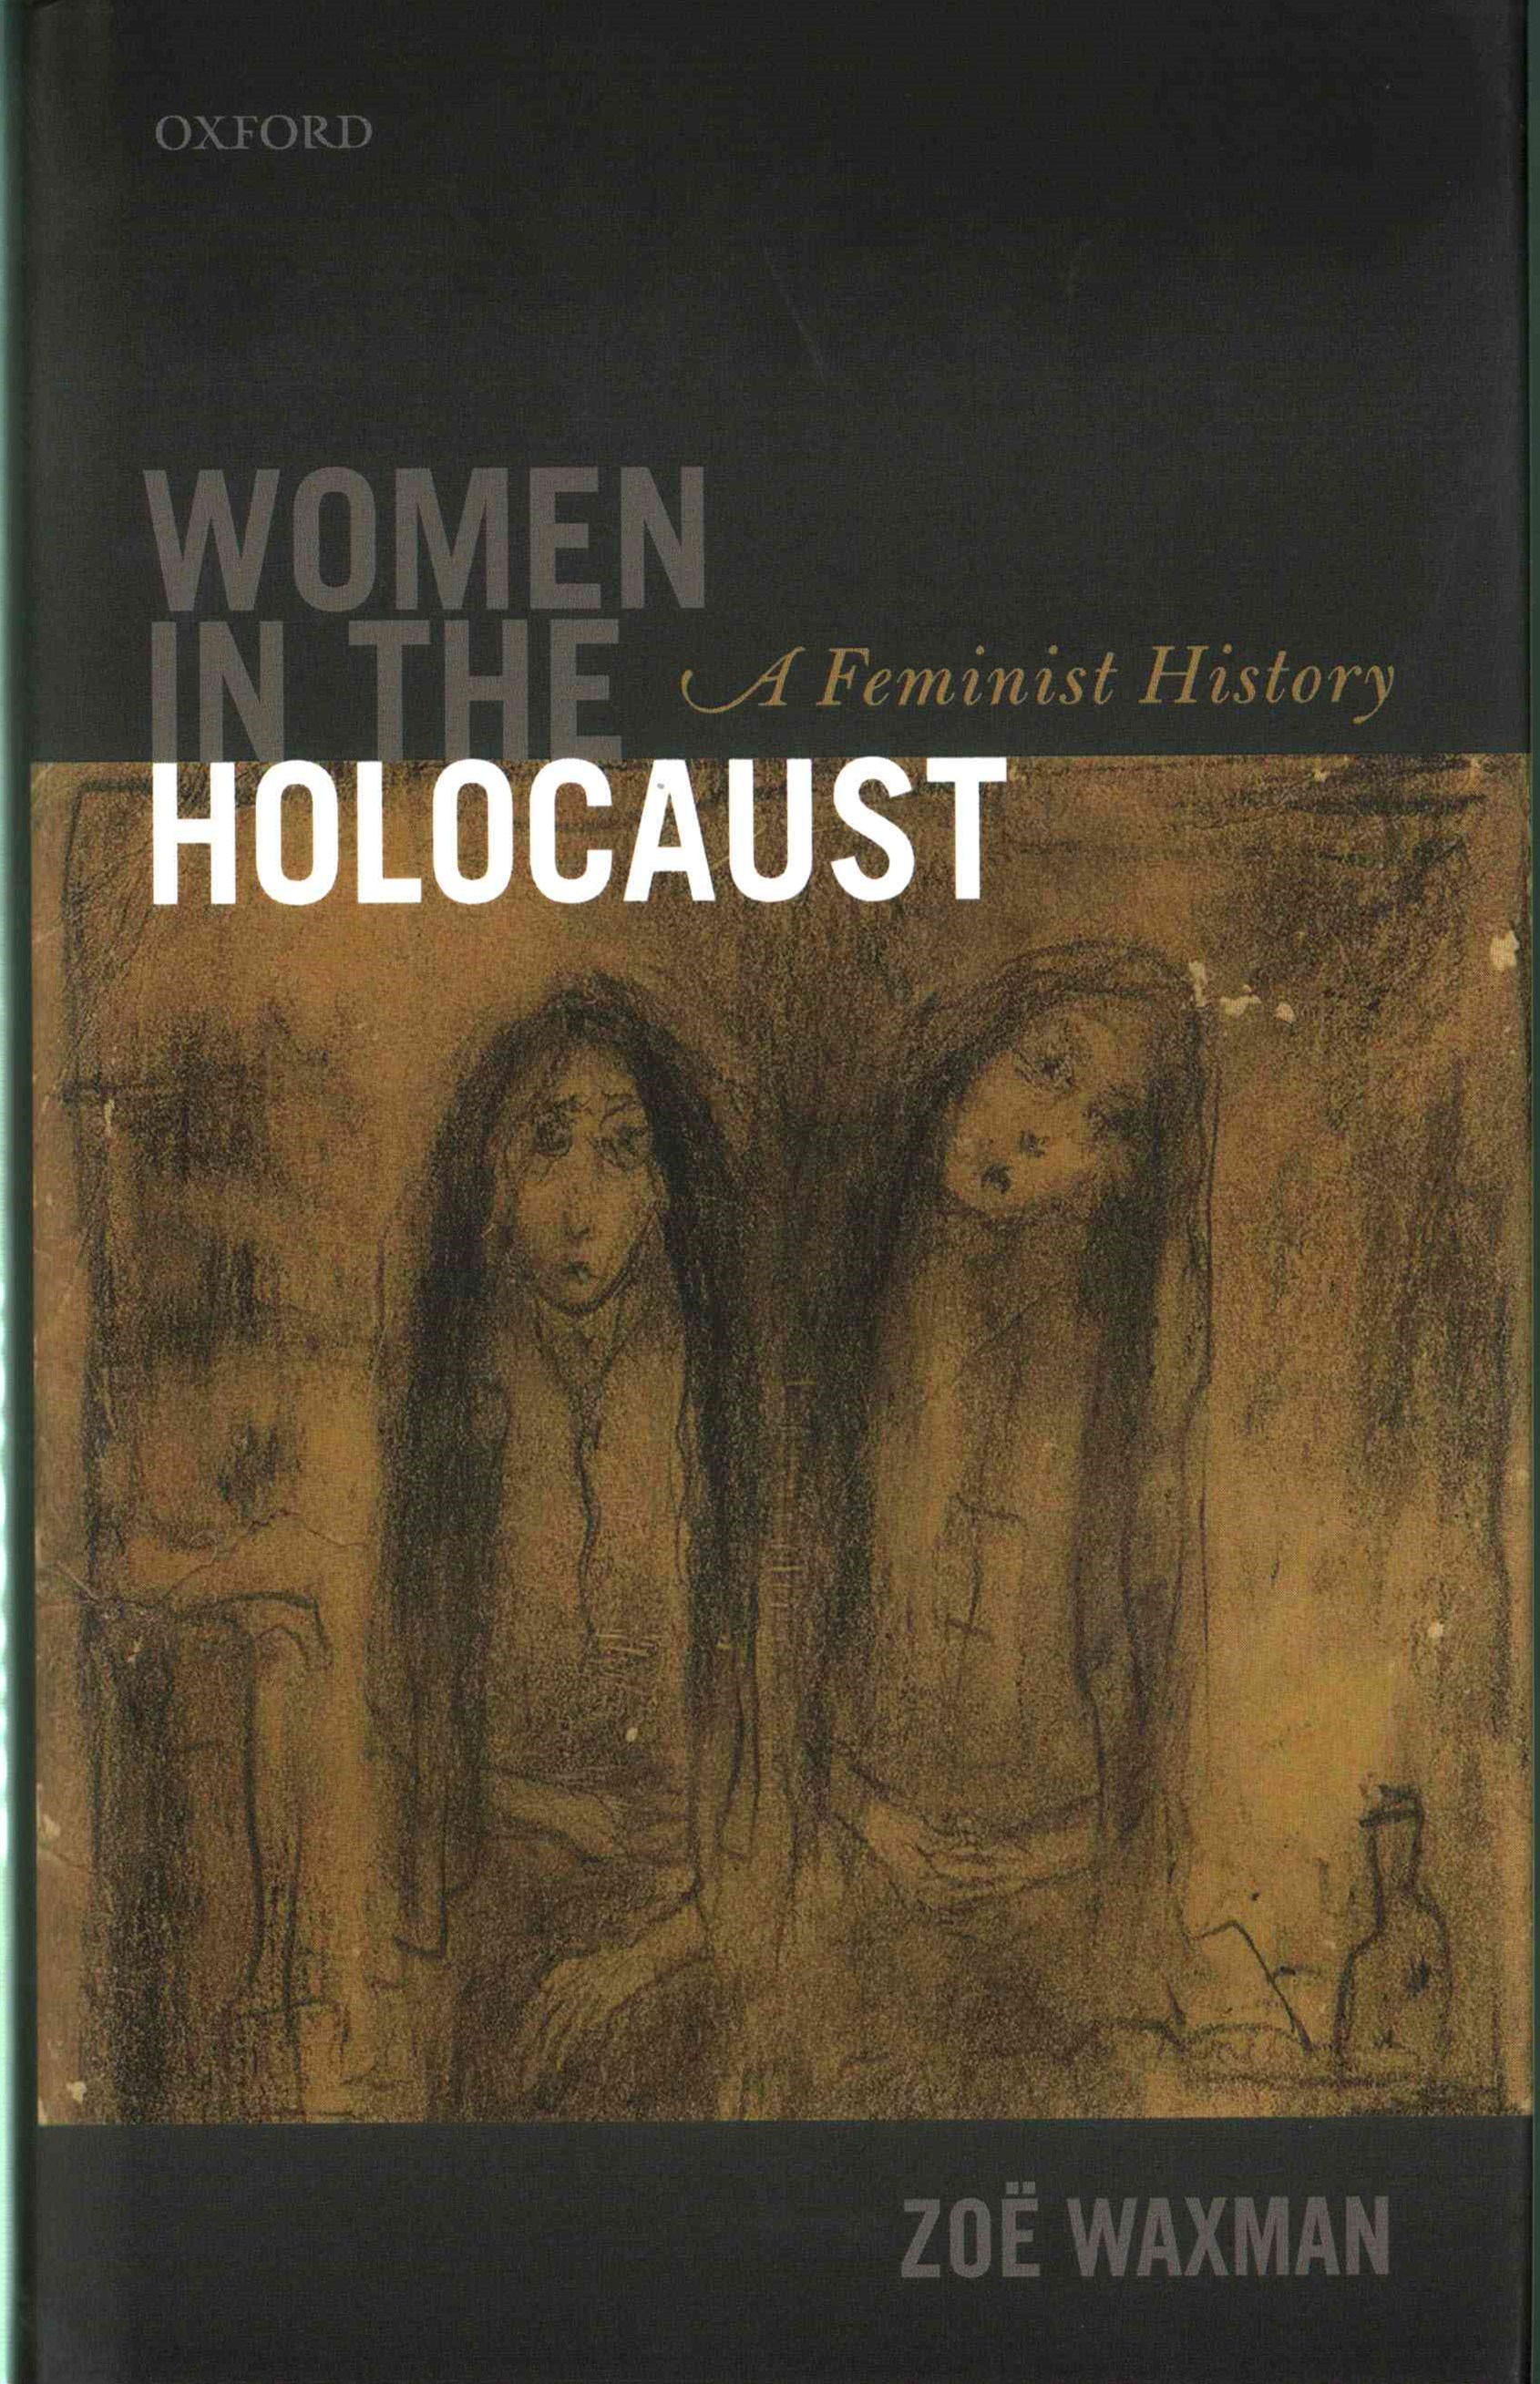 Women in the Holocaut